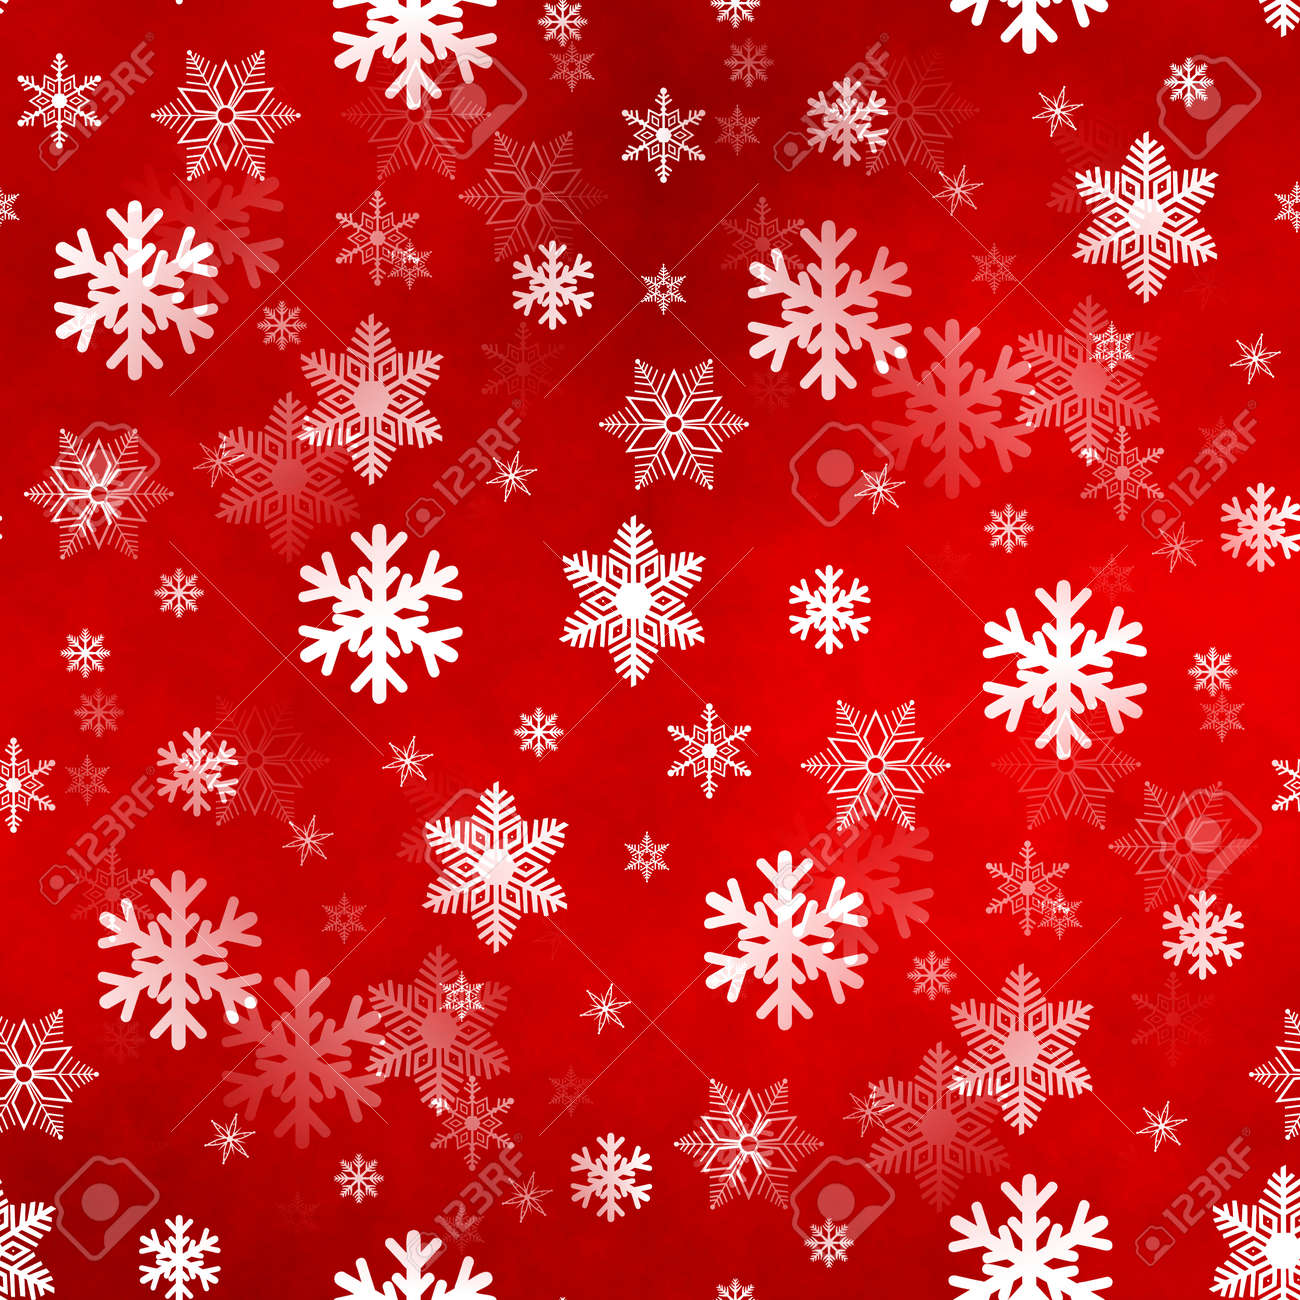 Christmas Snowflakes.Light Red Winter Christmas Snowflakes With A Seamless Pattern